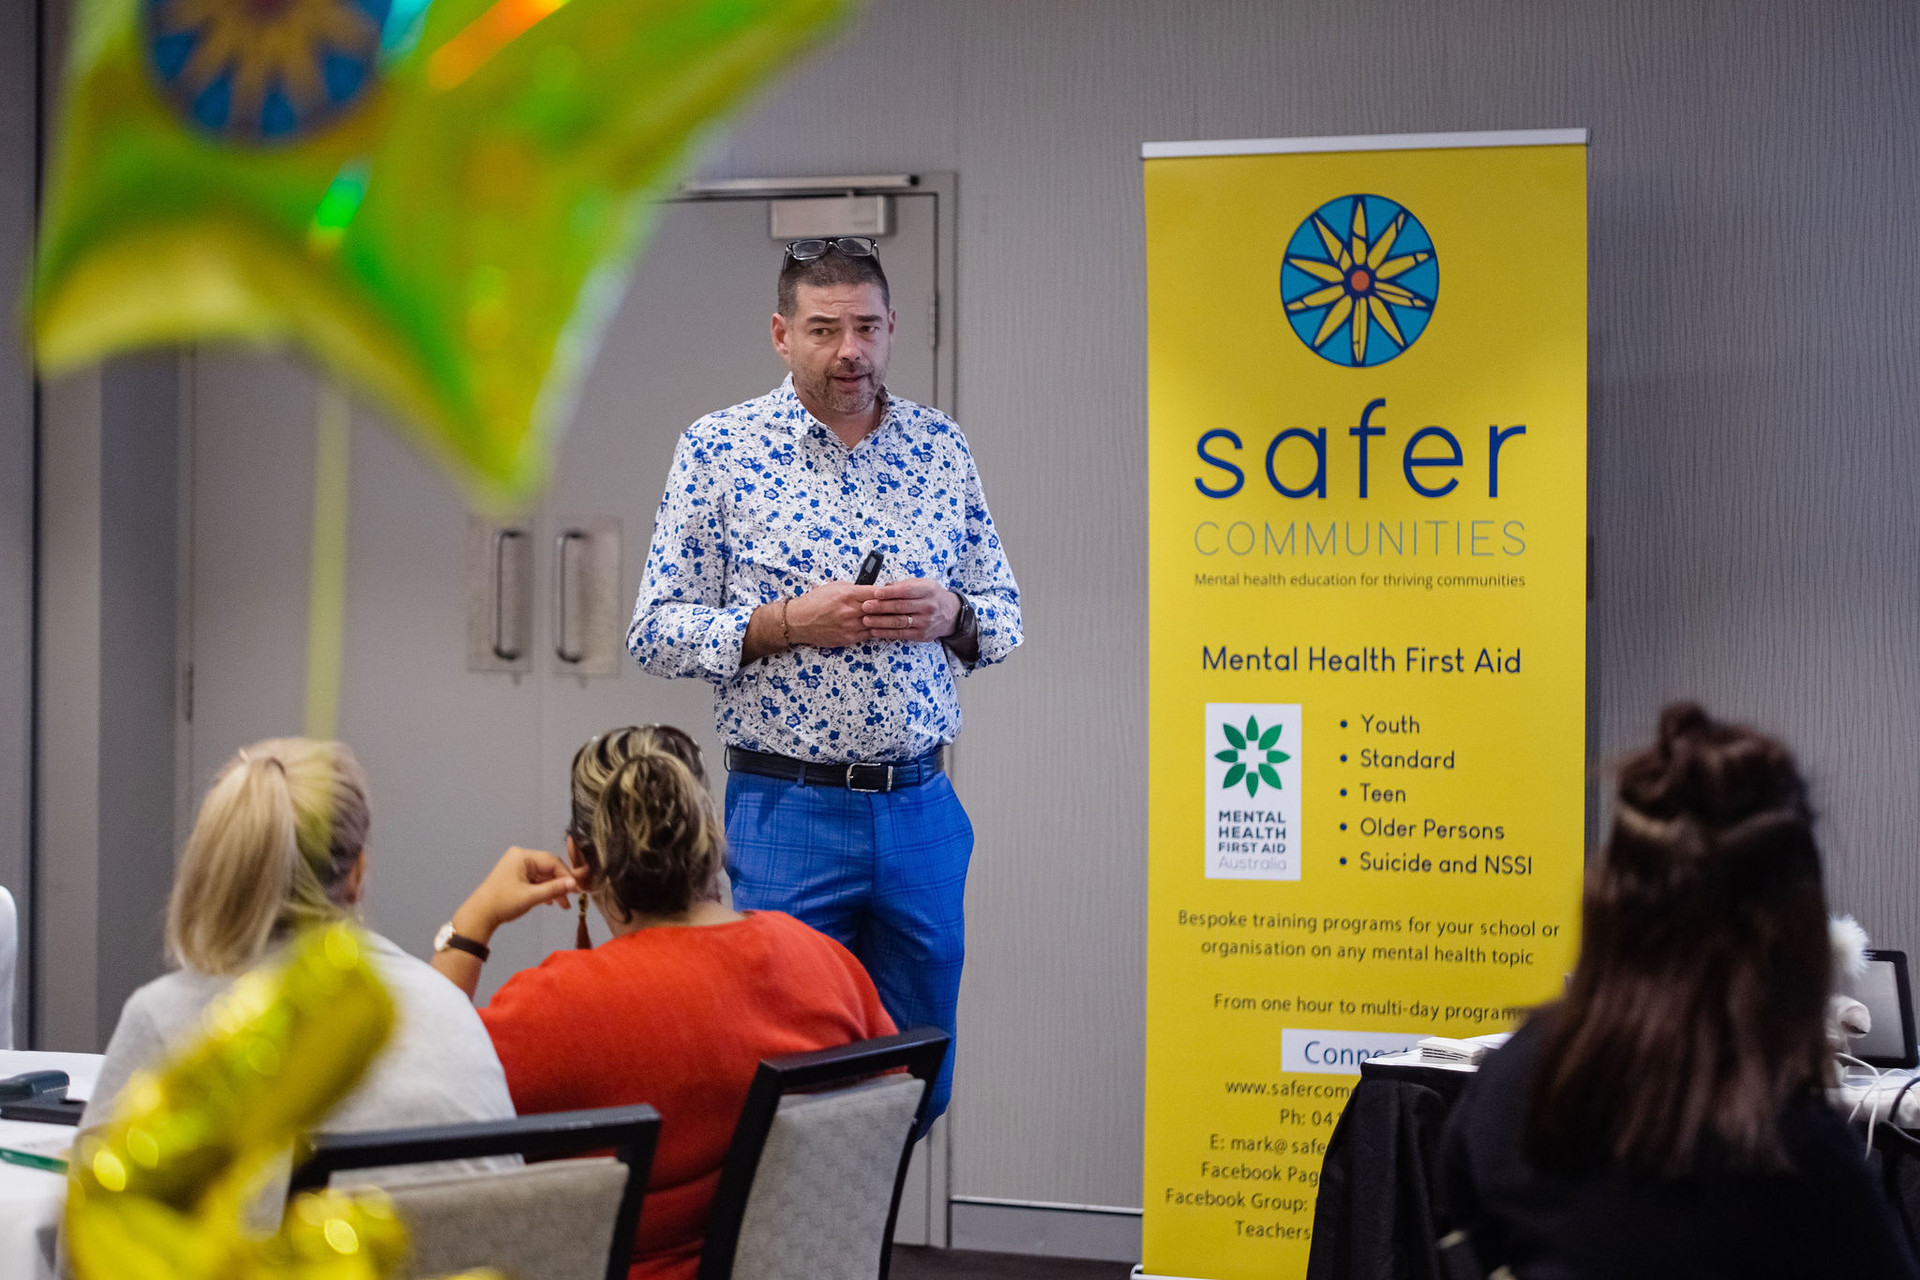 Safer-Communities-MHFA-Training-3